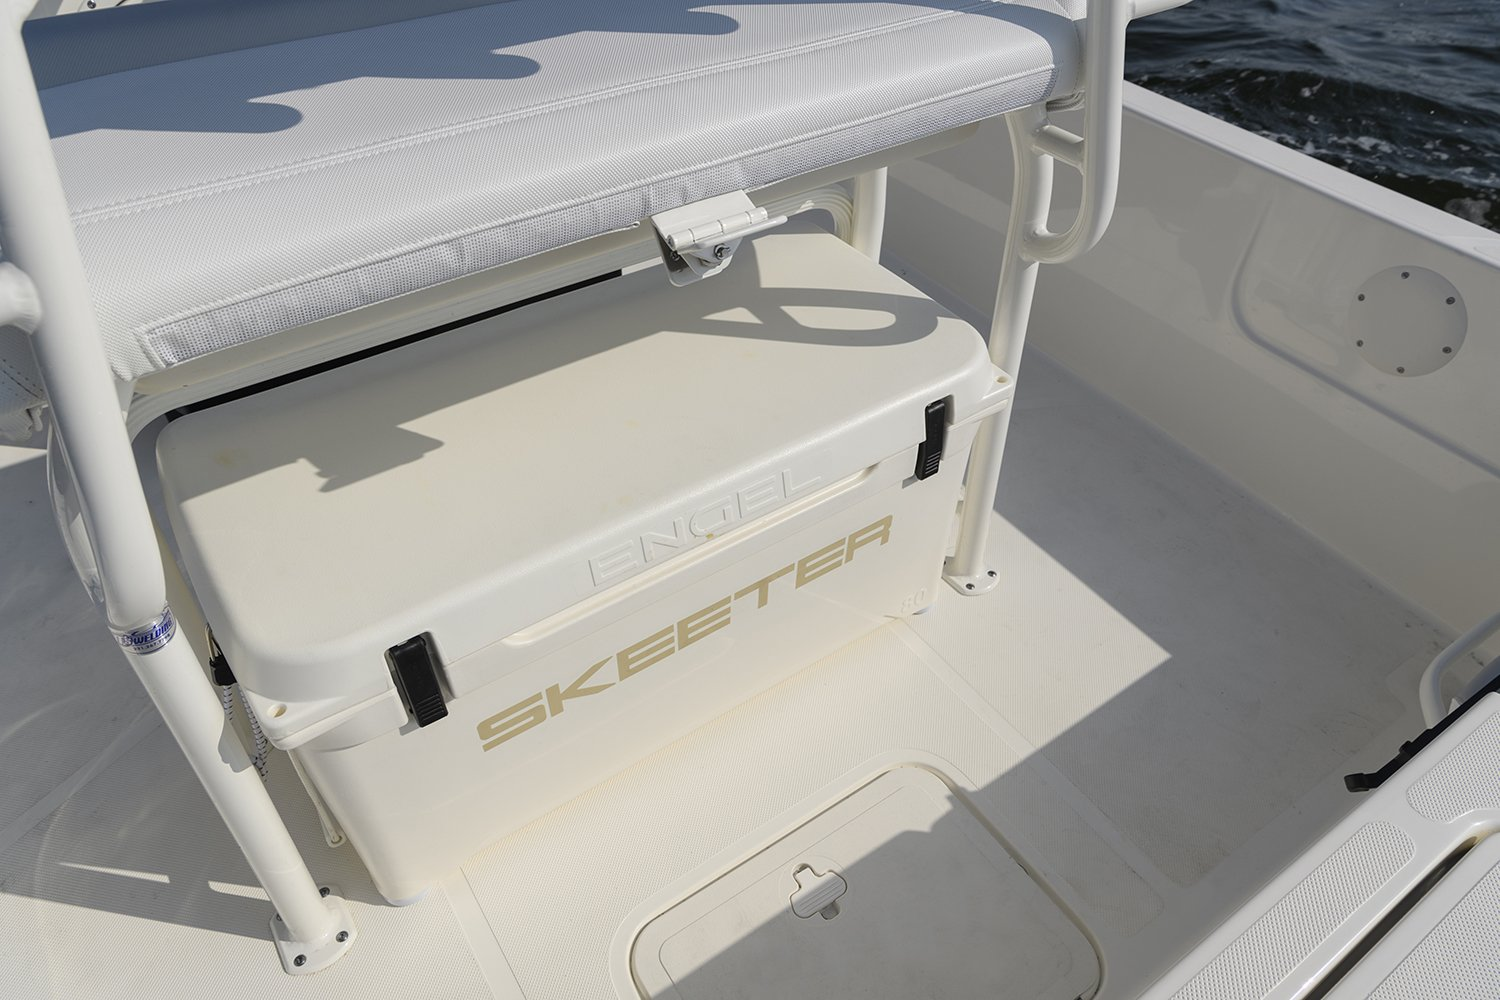 2018 Skeeter Sx210 Bay Boat For Sale Yamaha 60 Hp Wiring Diagram Engel Cooler Come Standard On This Affordable